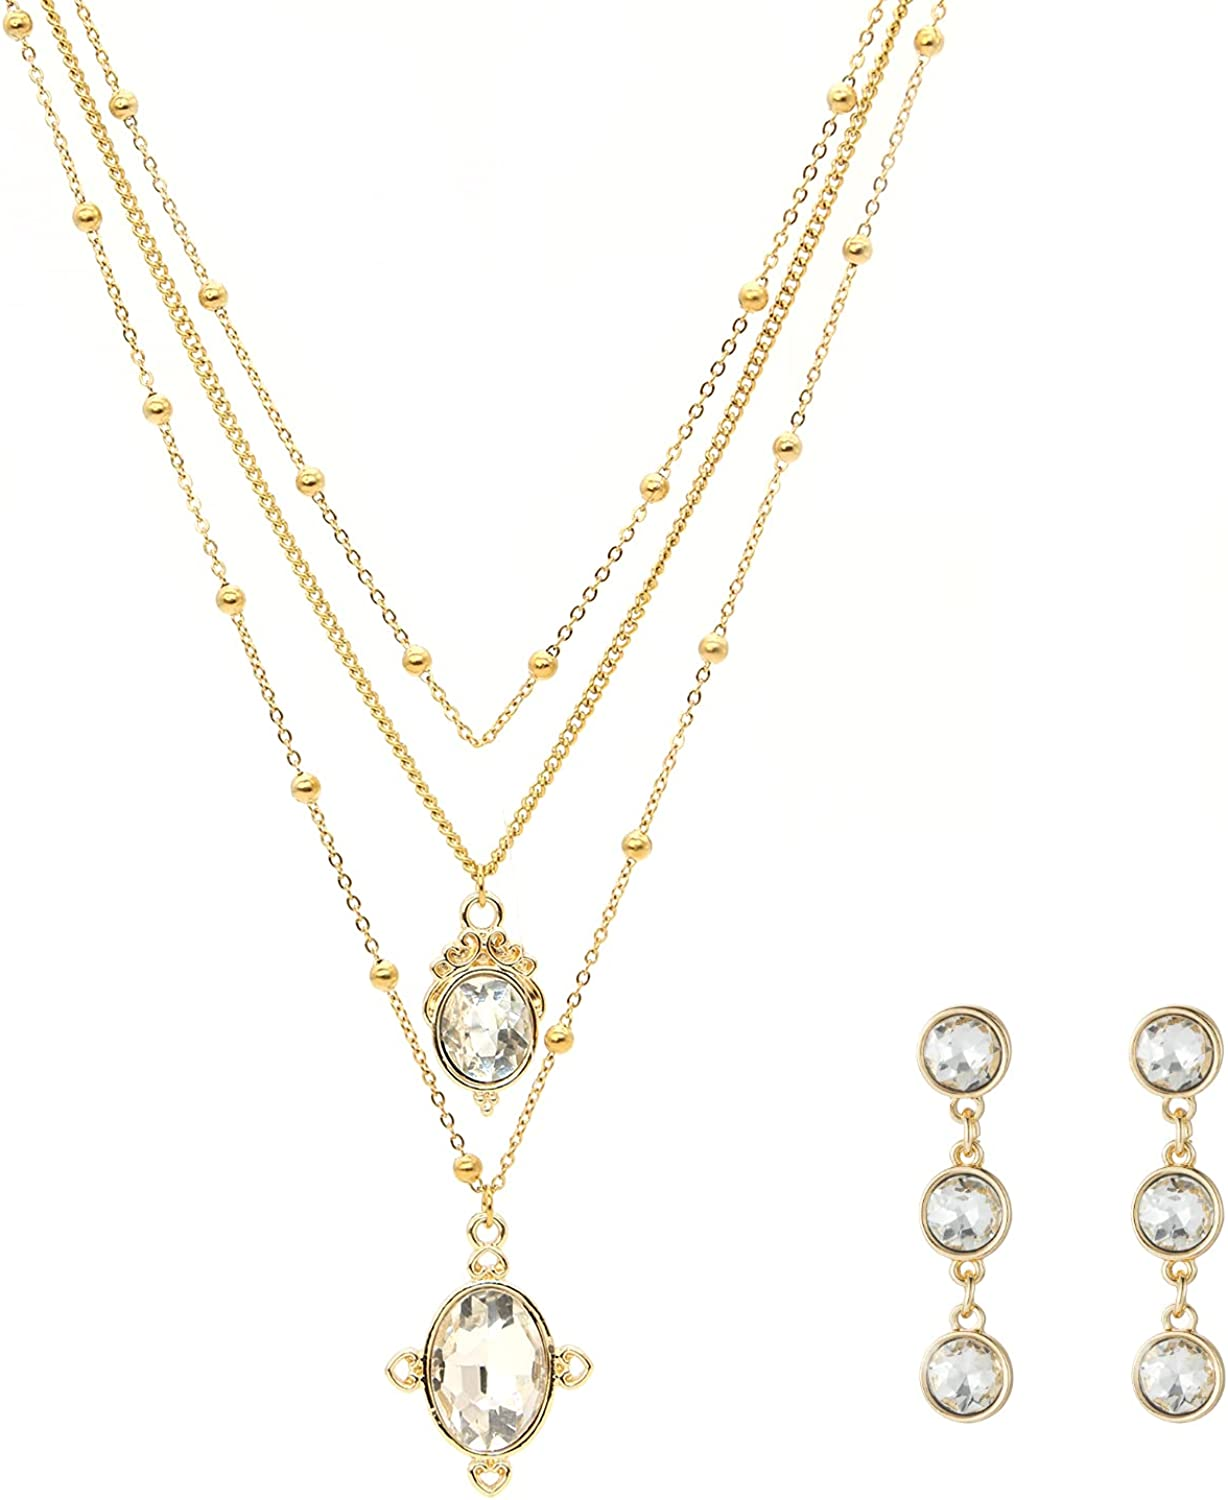 Layered Necklace and Earrings Sets for Women Simple Gold Chains Pendant Necklace Jewelry Gifts for Her on Christmas/Valentine's/Mother's Day/Anniversary/ Birthday Necklace Sets Gifts for Women/Girls/Wife/Girlfriend